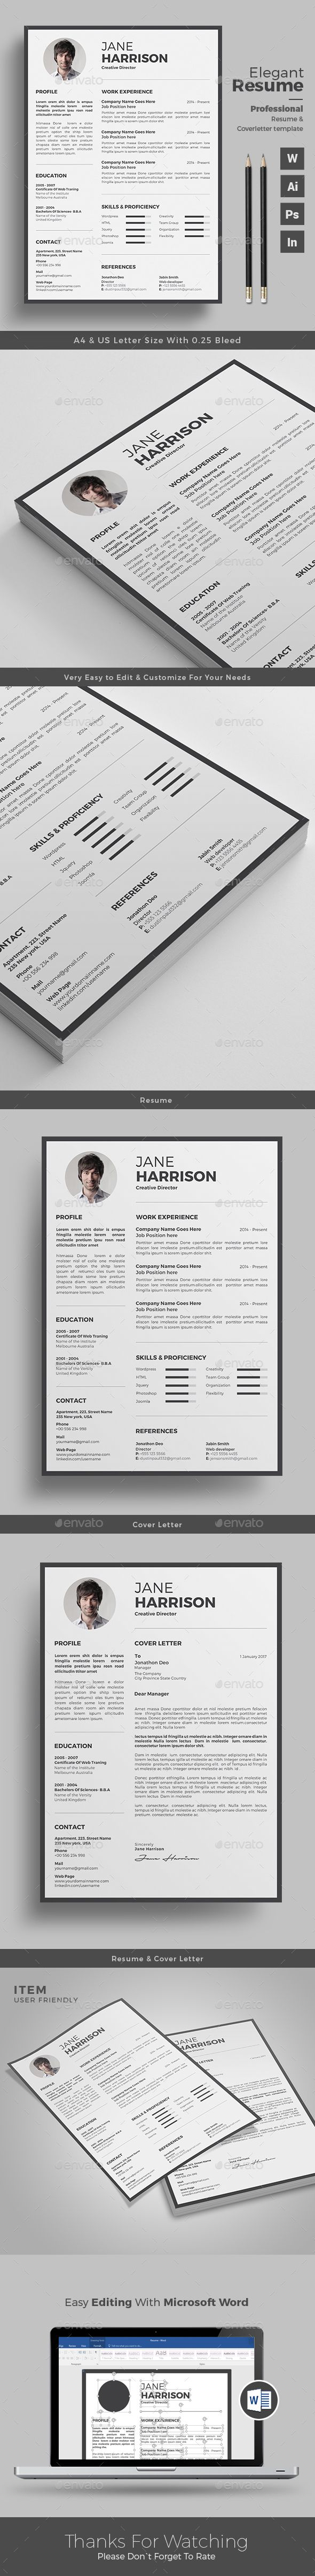 Clean Resume/CV by themedevisers Resume Word Template / CV Template with super clean and modern look. Clean Resume Template page designs are easy to use and custo